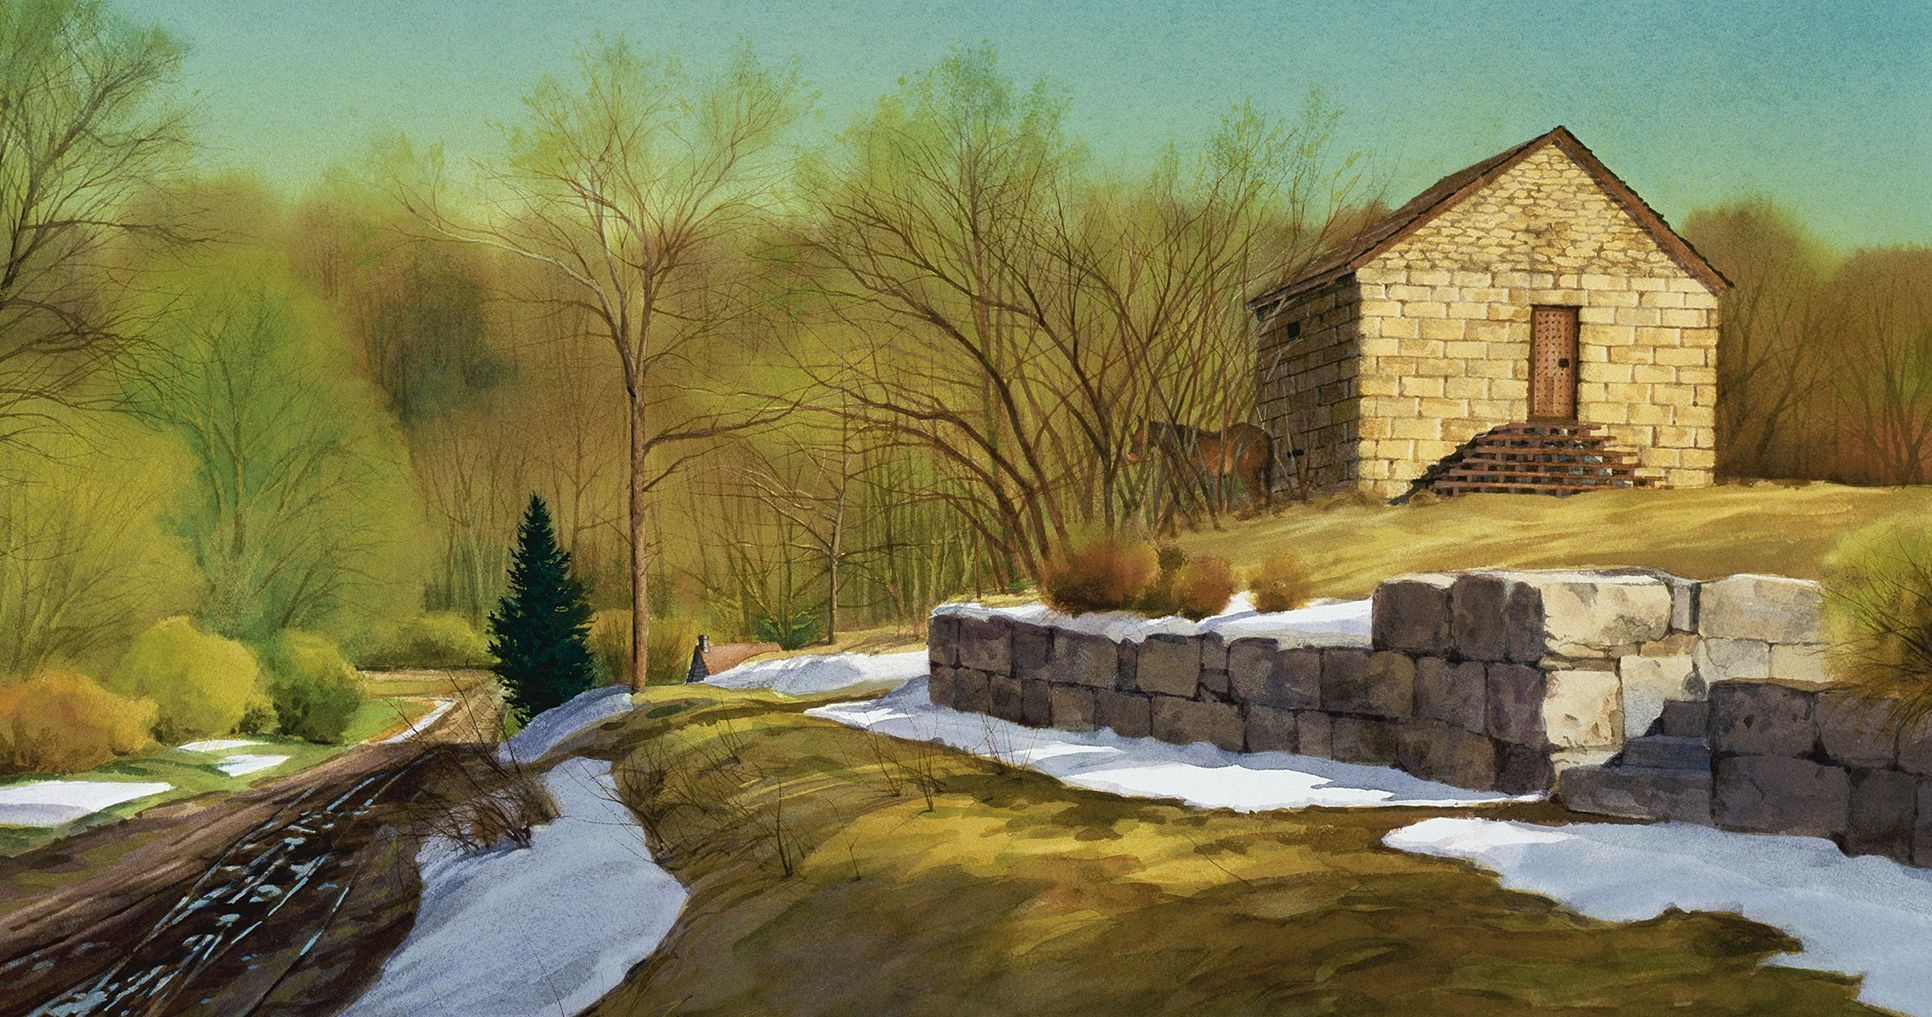 Liberty Jail Spring, by Al Rounds. Image by Church of Jesus Christ.